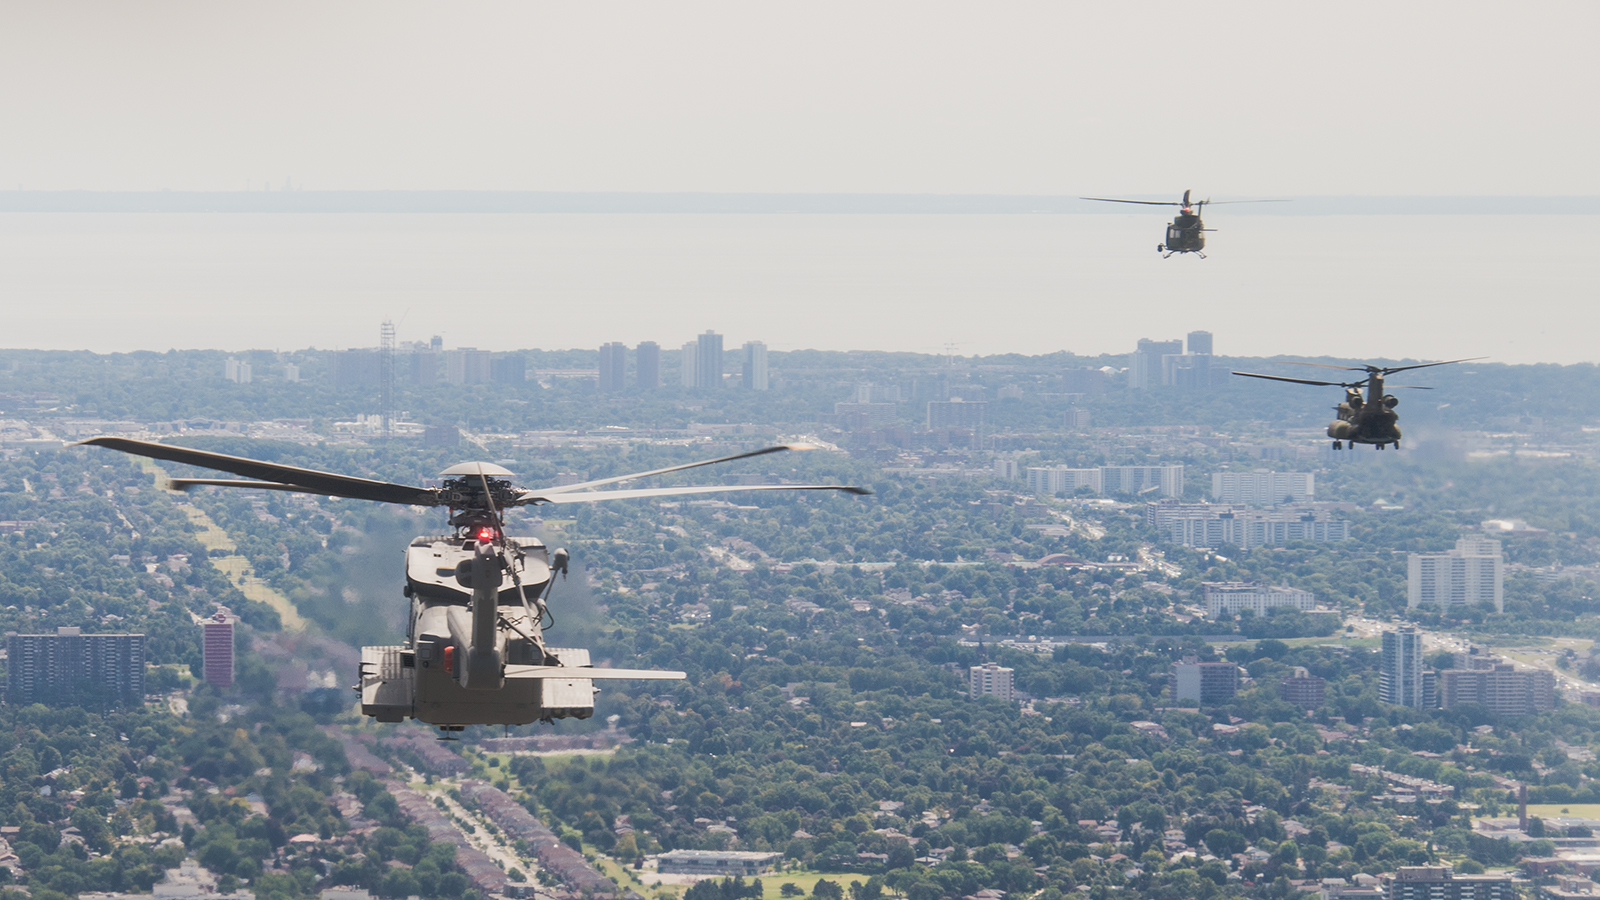 RCAF helicopters fly over Toronto during the presentation and consecration of RCAF Colours on September 1, 2017 (left to right): CH-148 Cyclone, CH-146 Griffon and CH-147F Chinook. PHOTO: Master Corporal Precious Carandang, LX01-2017-0077-0